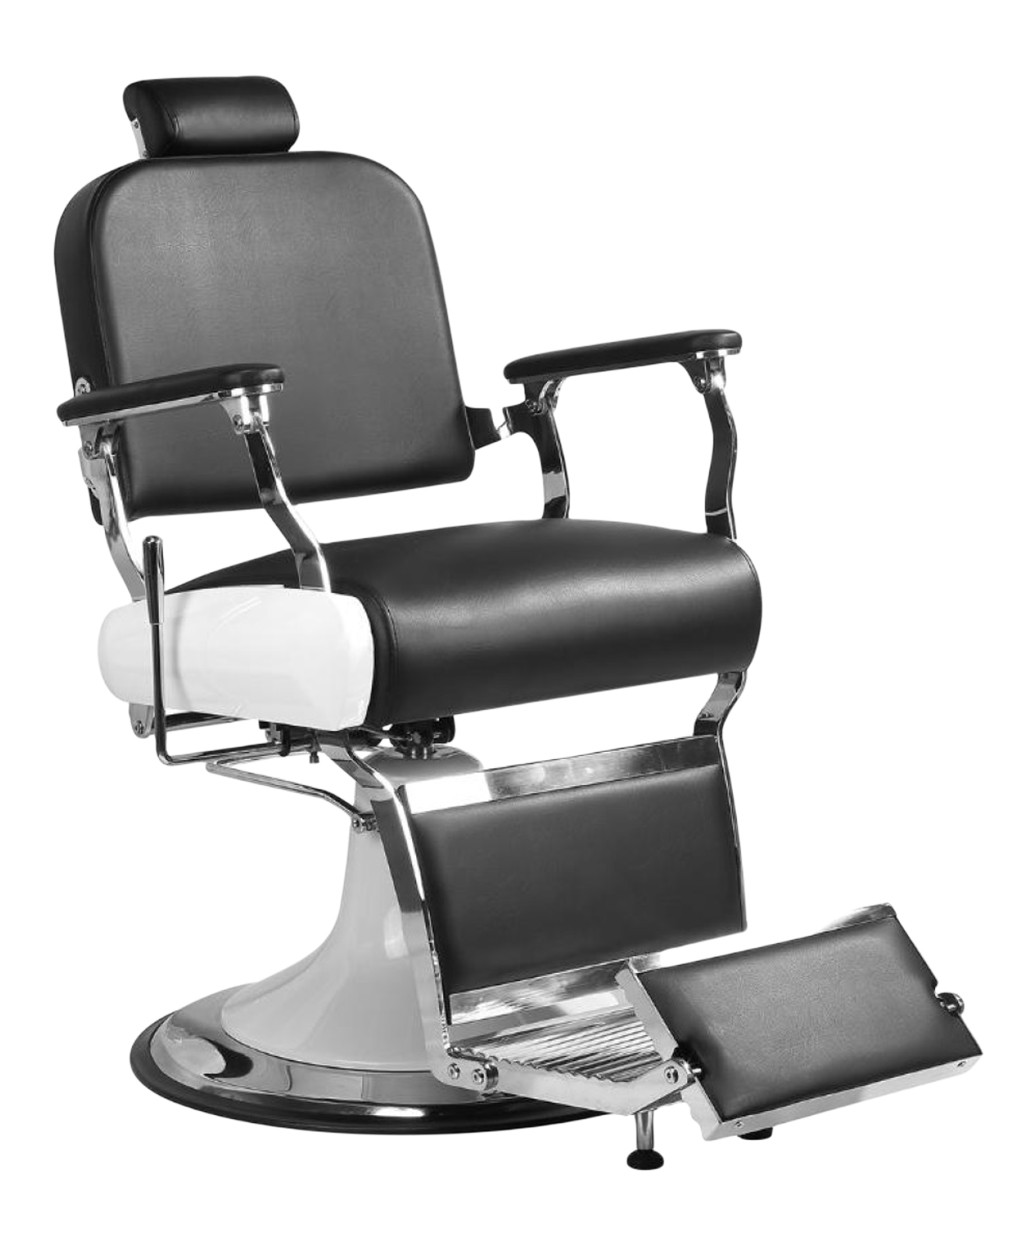 winston barber chair - Barber Chairs For Sale